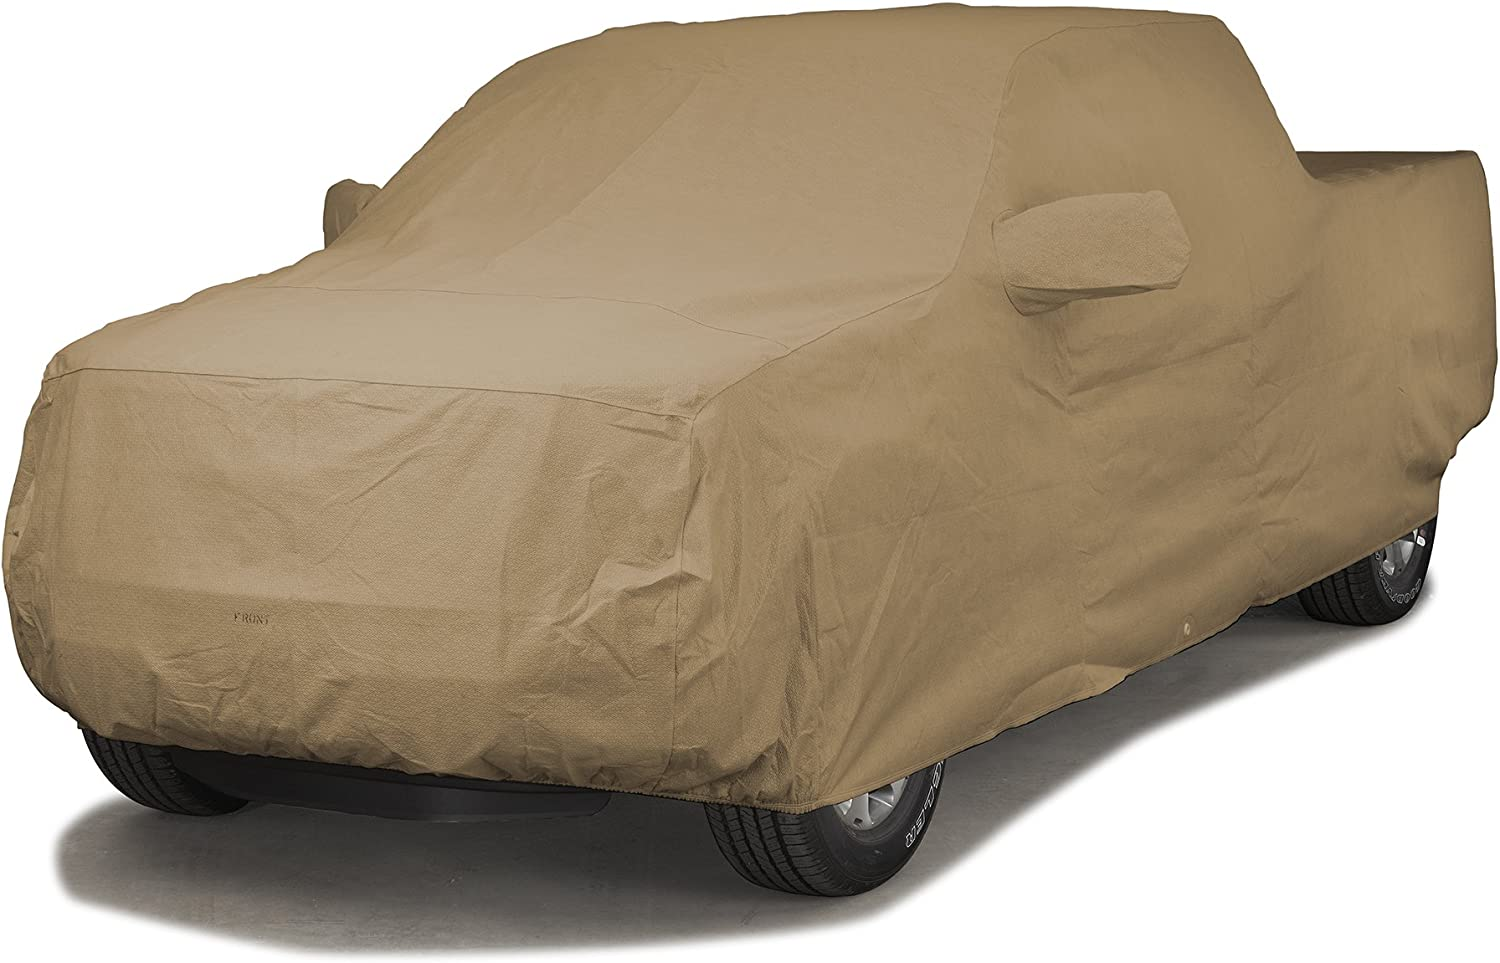 Ford Deluxe 2-Door Custom-Fit! 1946 1947 1948 1949 1950 1951 CAR COVER